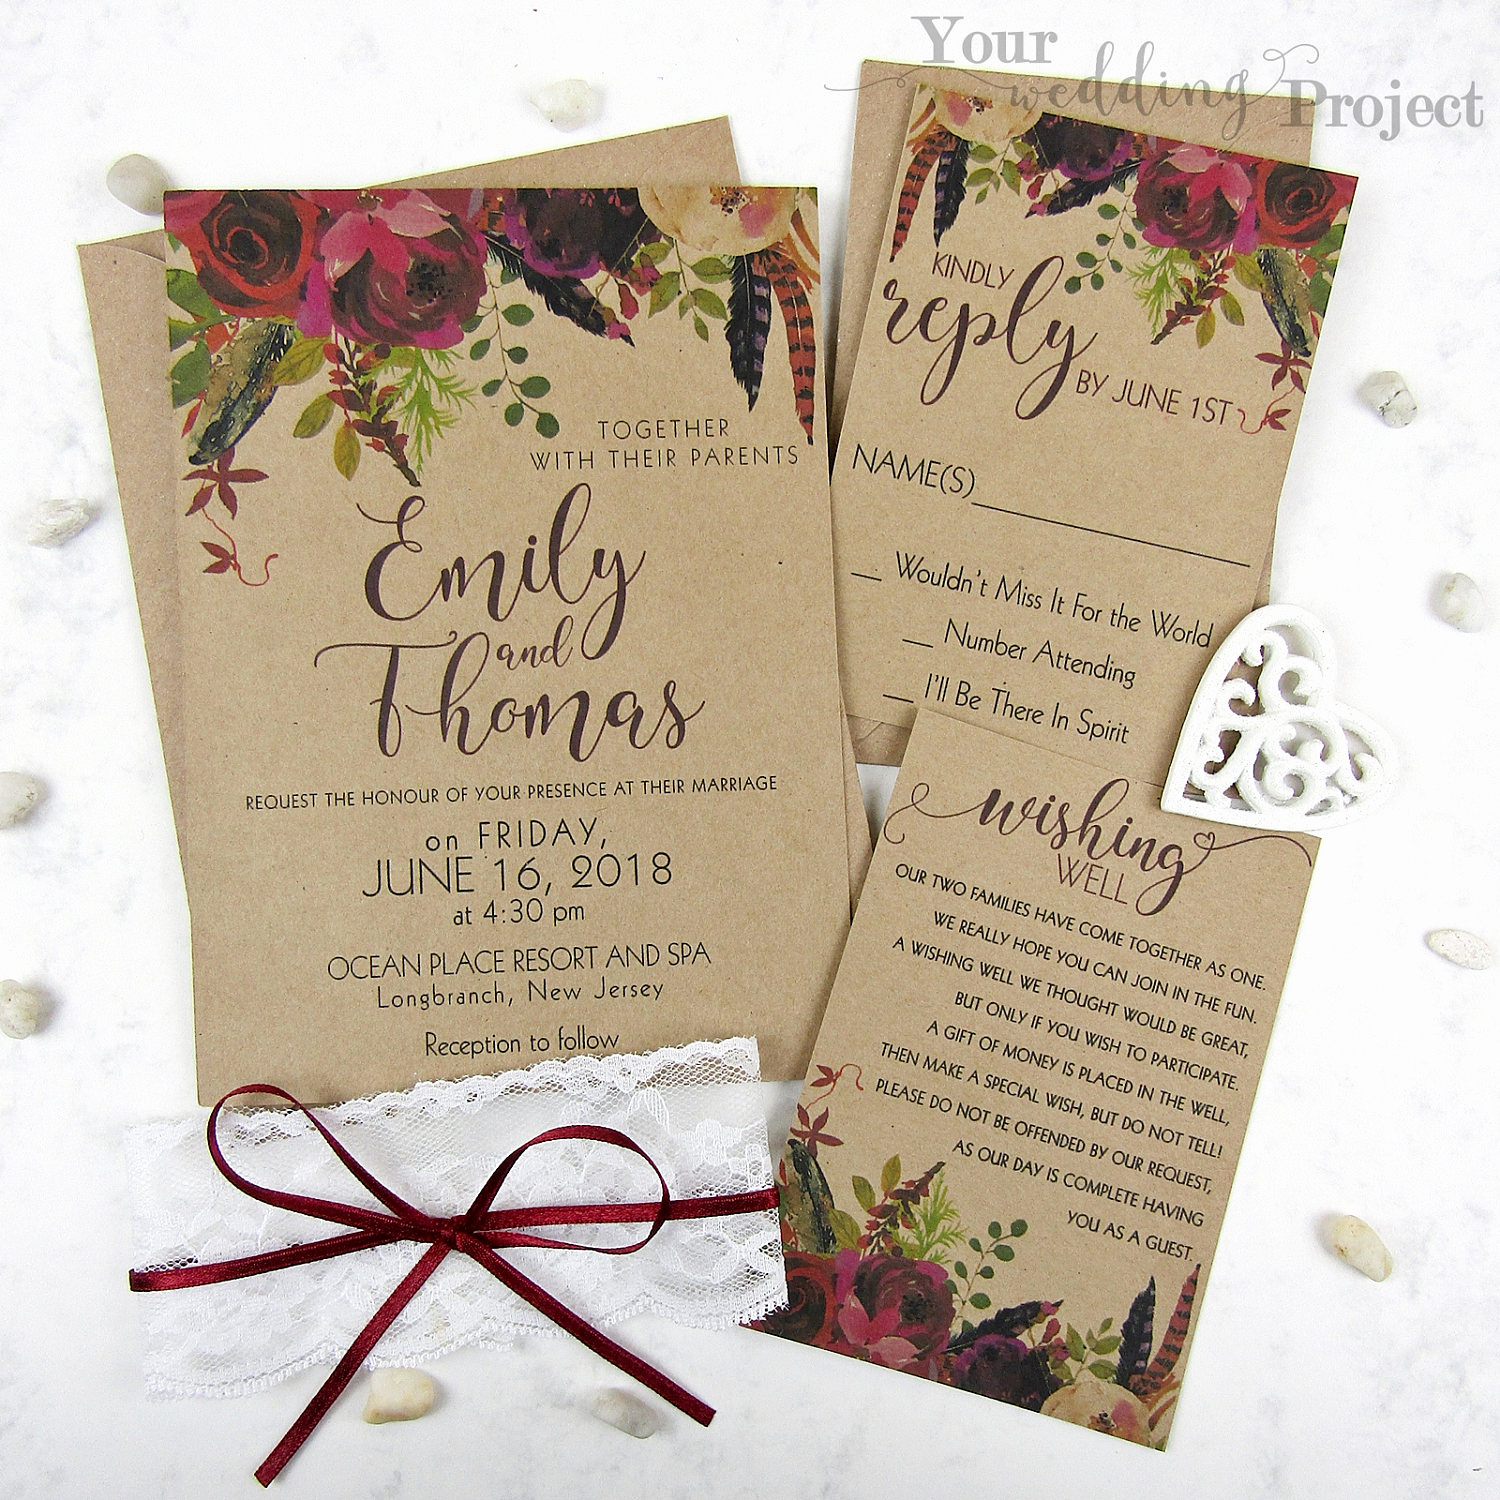 Rustic Wedding Invitation Sets Awesome Burgundy Floral Wedding Invitation Set with Lace Rustic